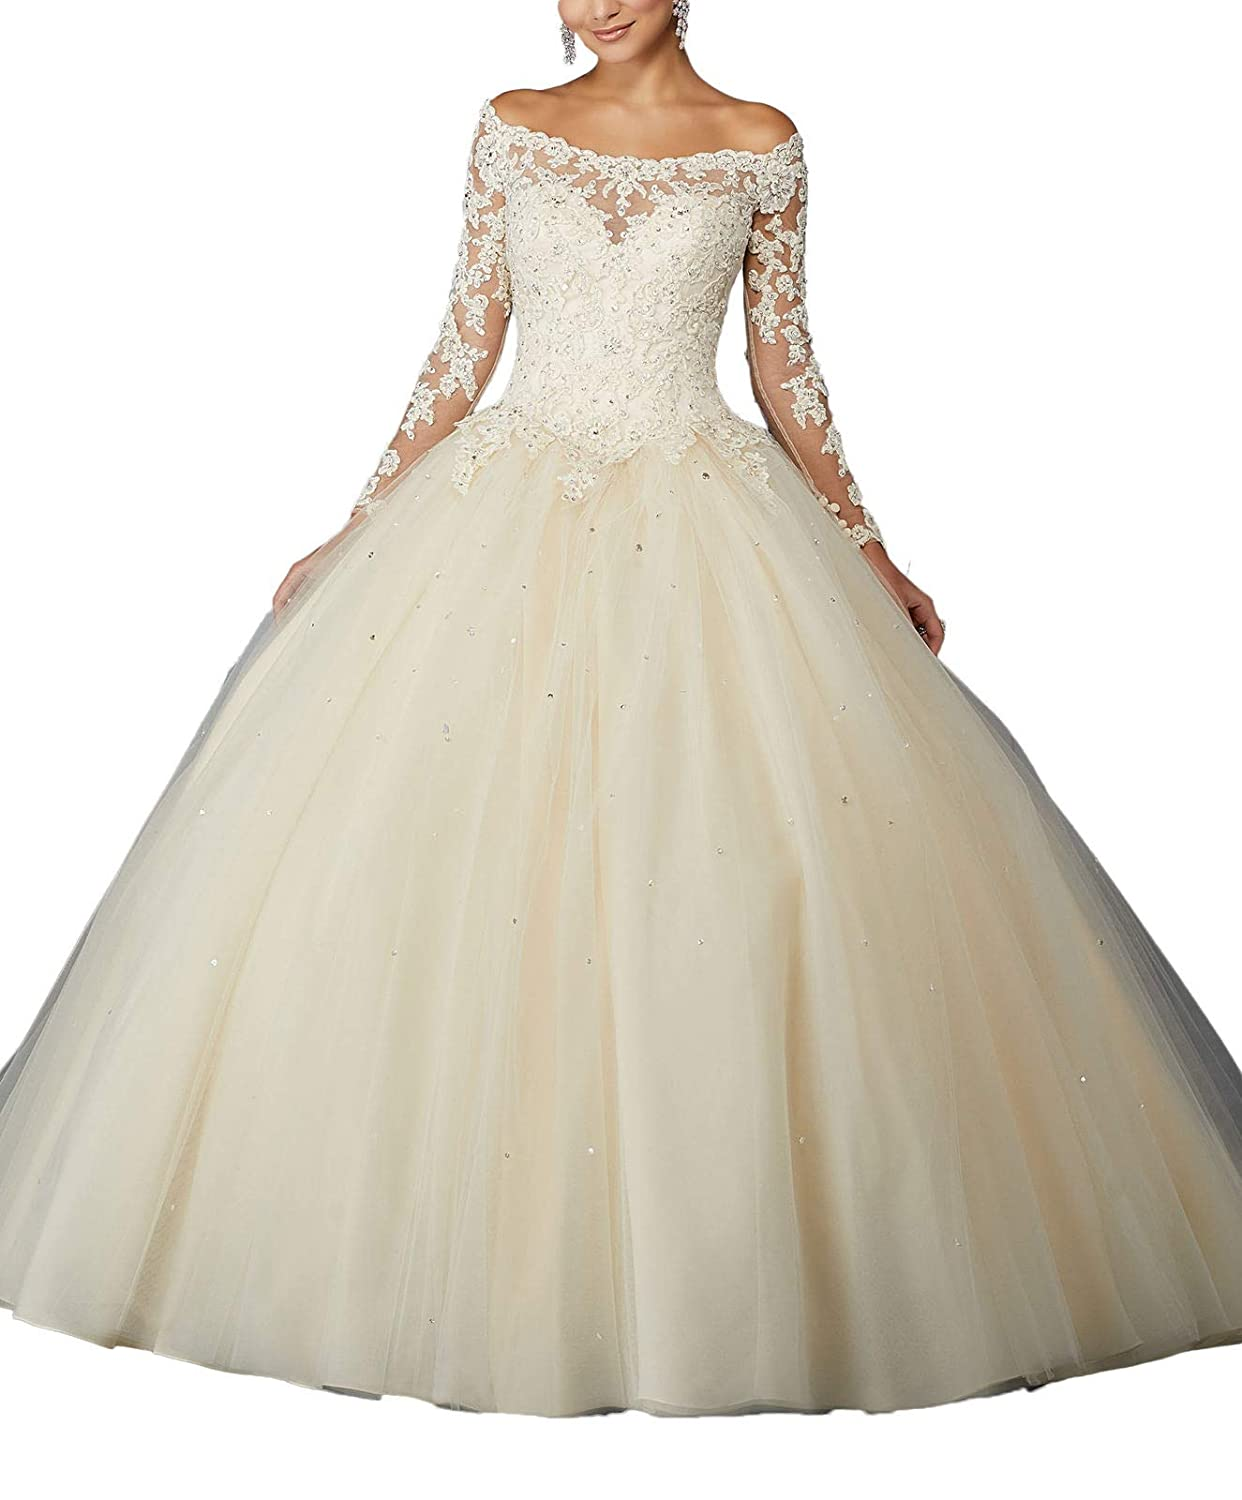 Champagne Yisha Bello Women's Off The Shoulder Lace Applique Pro Ball Gowns Long Sleeve Beaded Quinceanera Dresses for Sweet 16